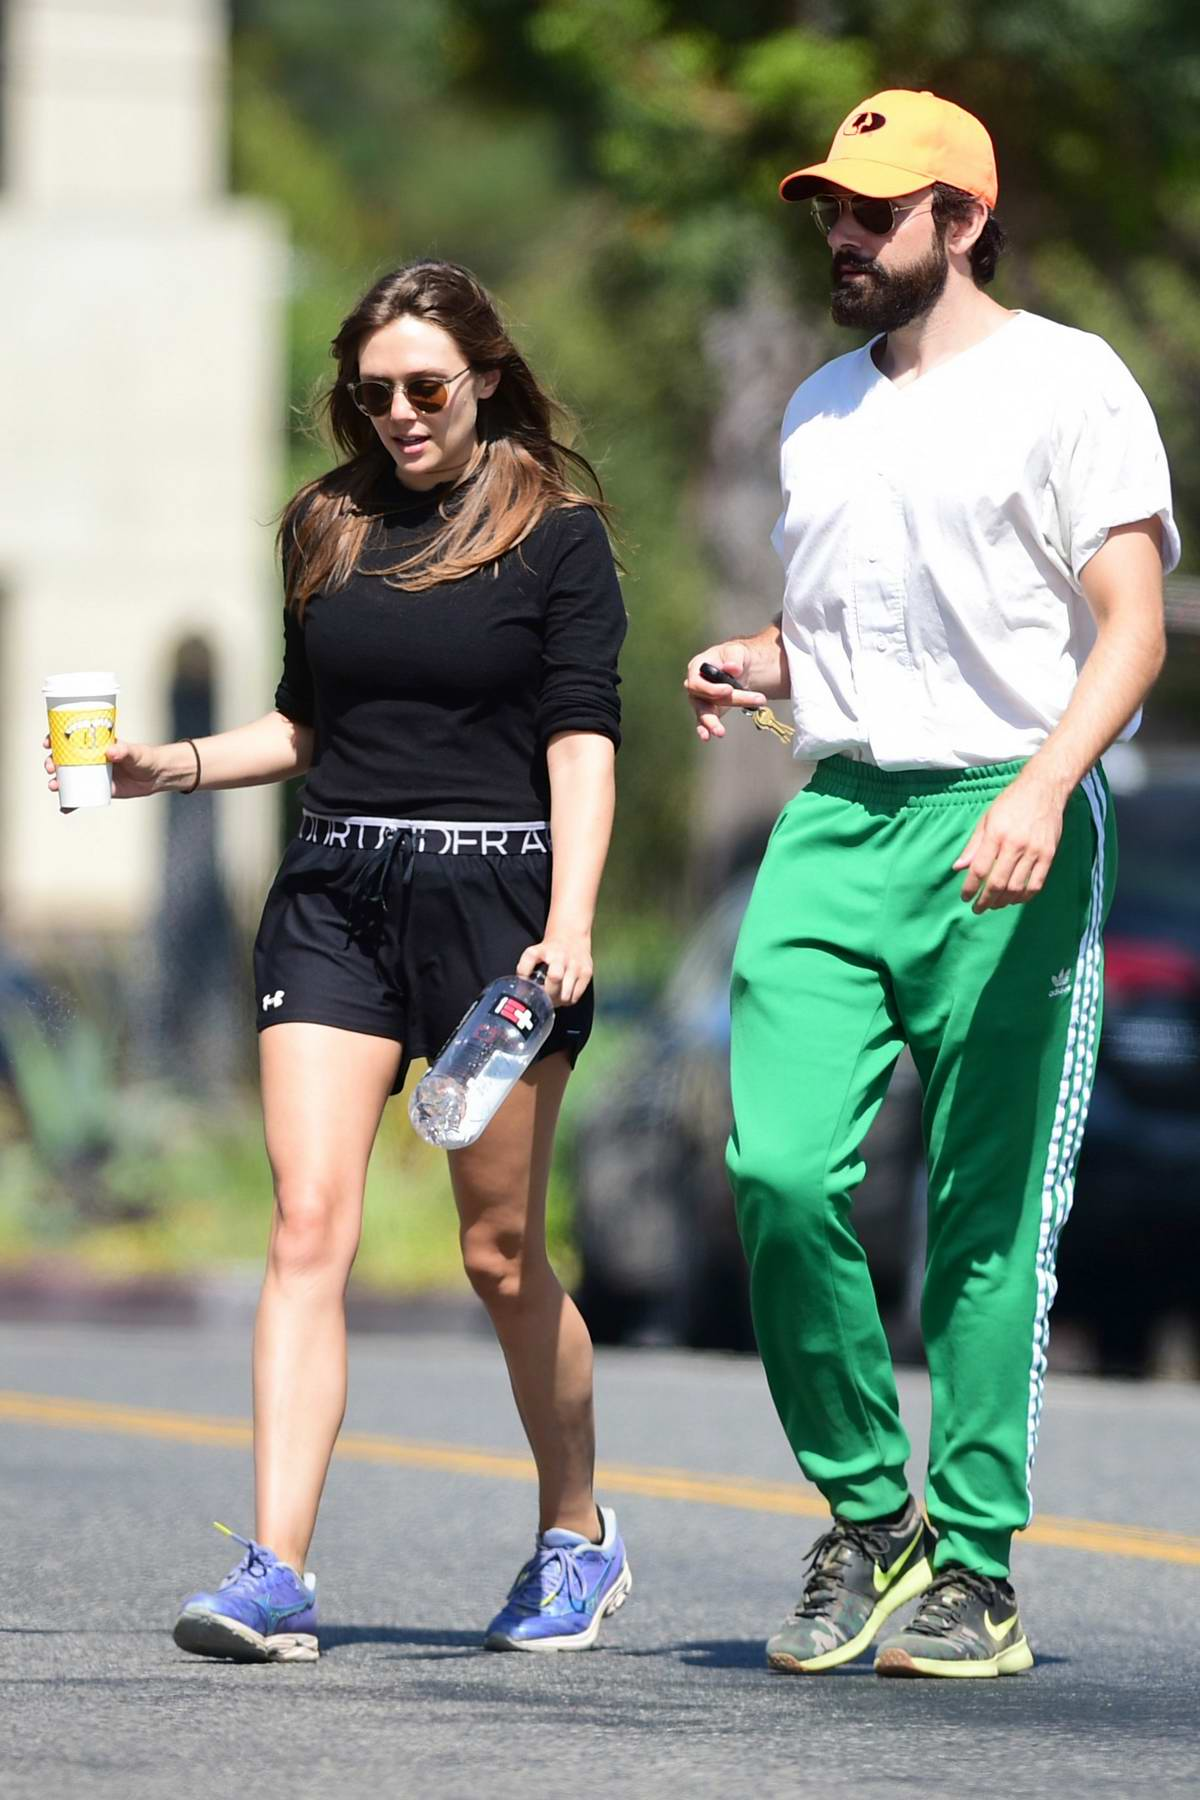 Elizabeth Olsen dons black top and shorts as she and Robbie Arnett head to the gym in Studio City, Los Angeles